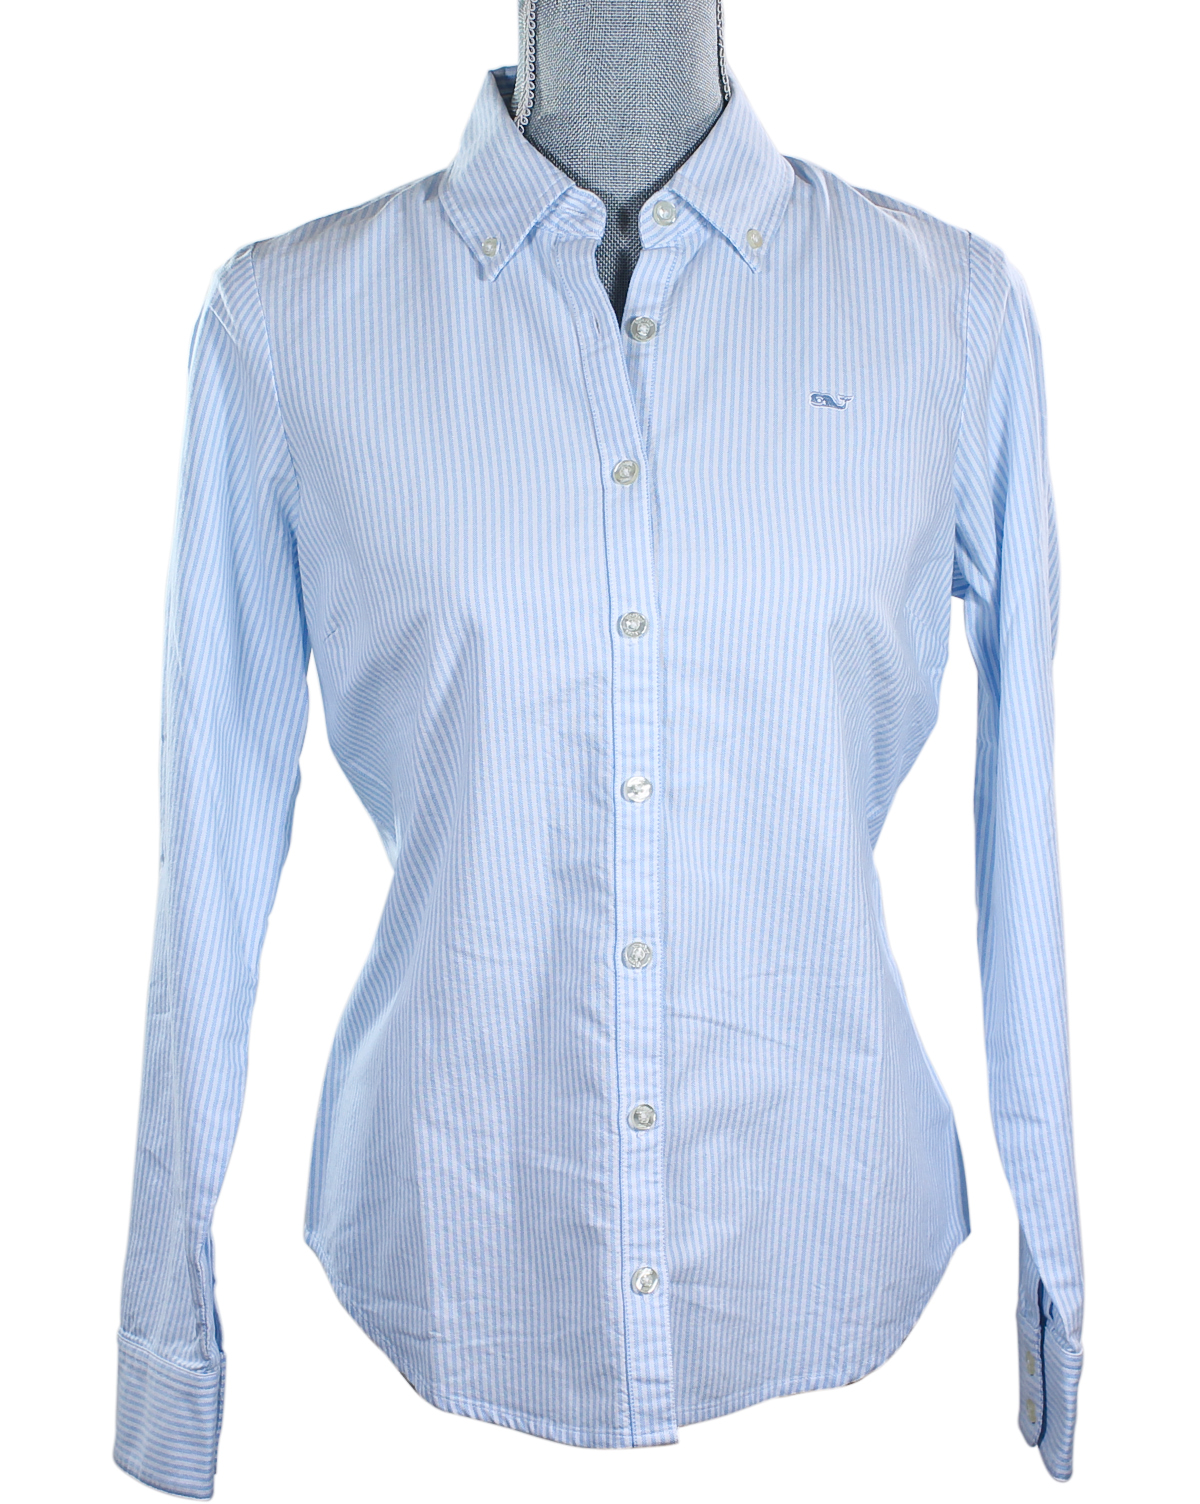 Shop for womens oxford shirts online at Target. Free shipping on purchases over $35 and save 5% every day with your Target REDcard.